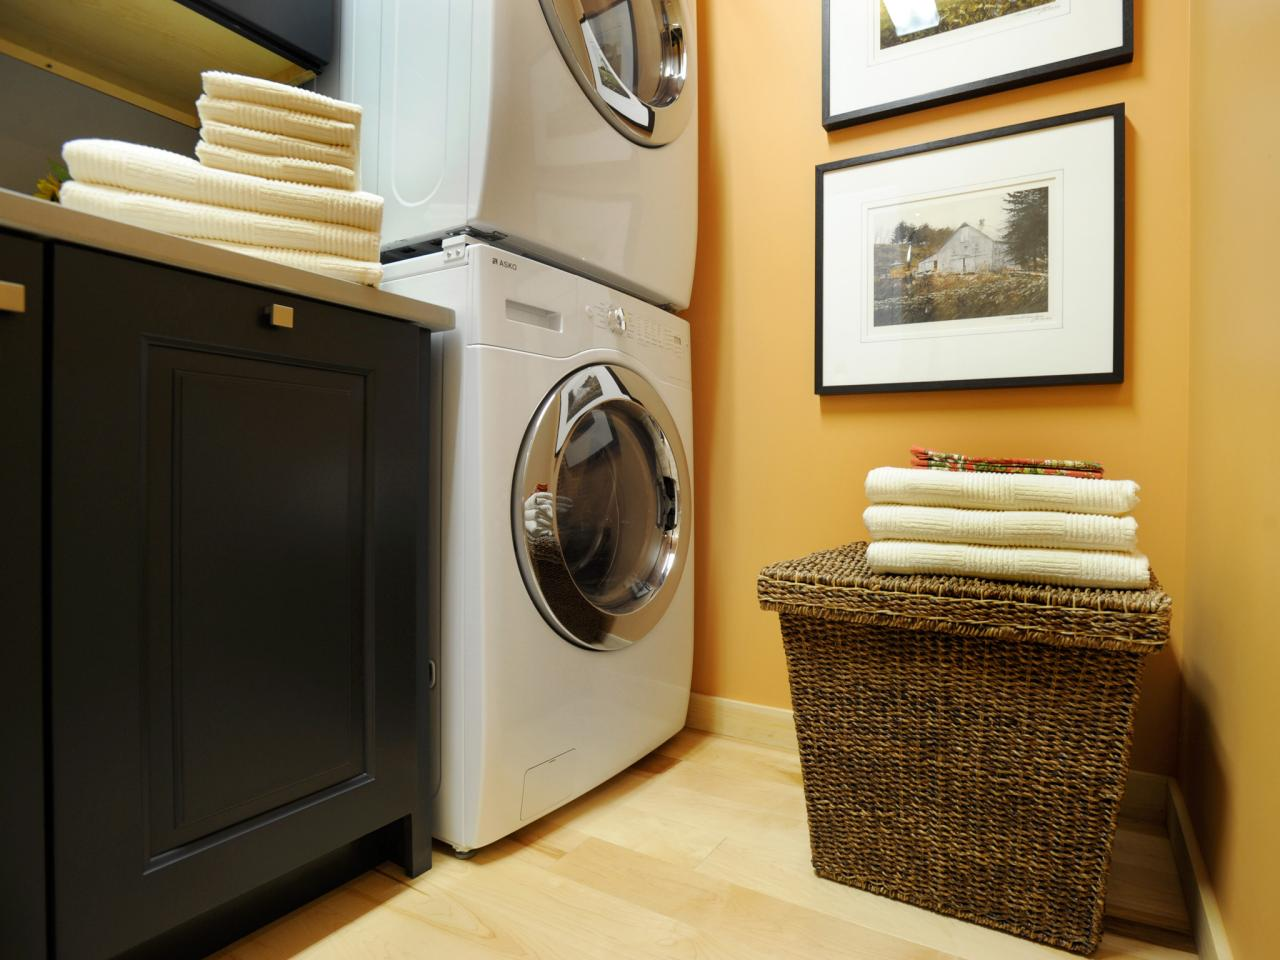 Small Laundry Room Storage Ideas: Pictures, Options, Tips & Advice ...